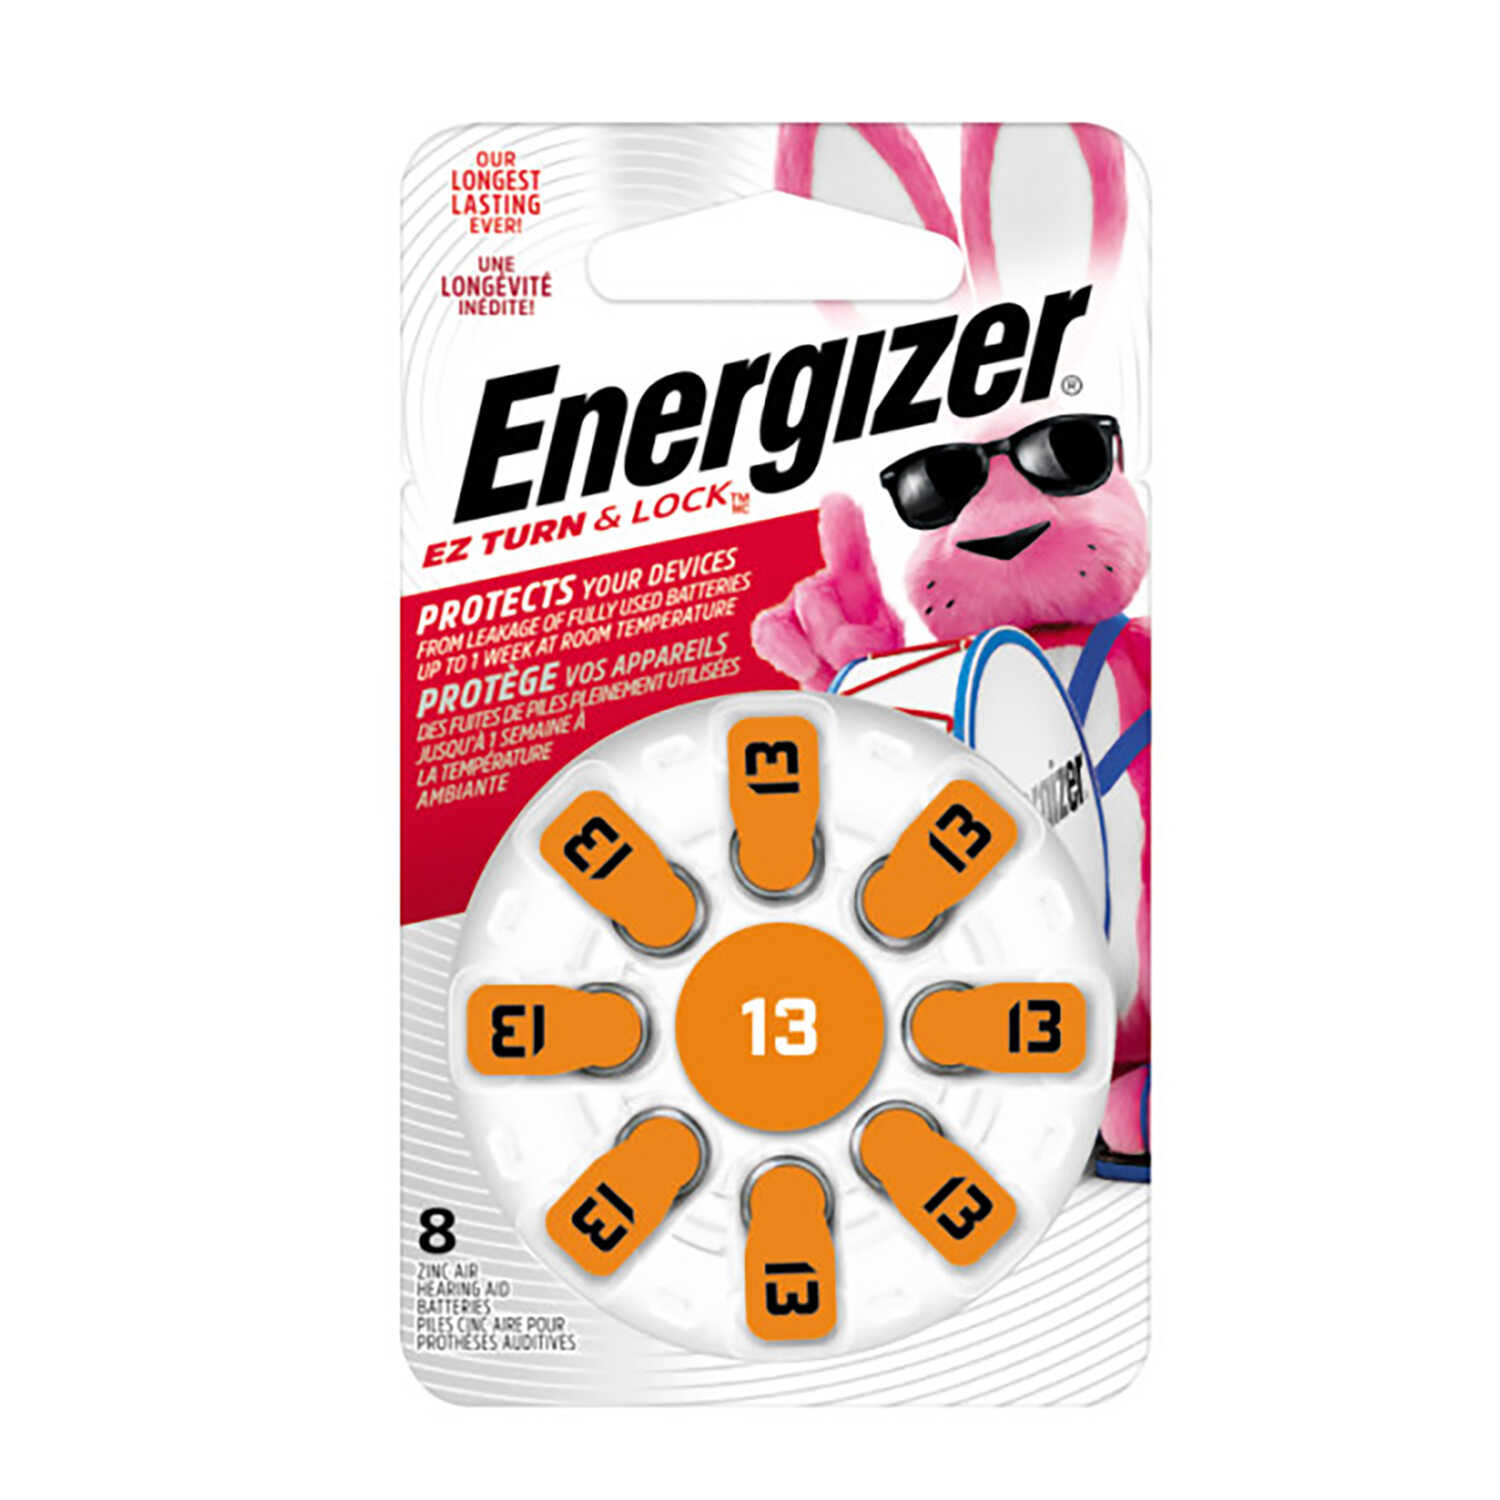 Energizer  Zinc Air  13  1.4 volt Hearing Aid Battery  8 pk